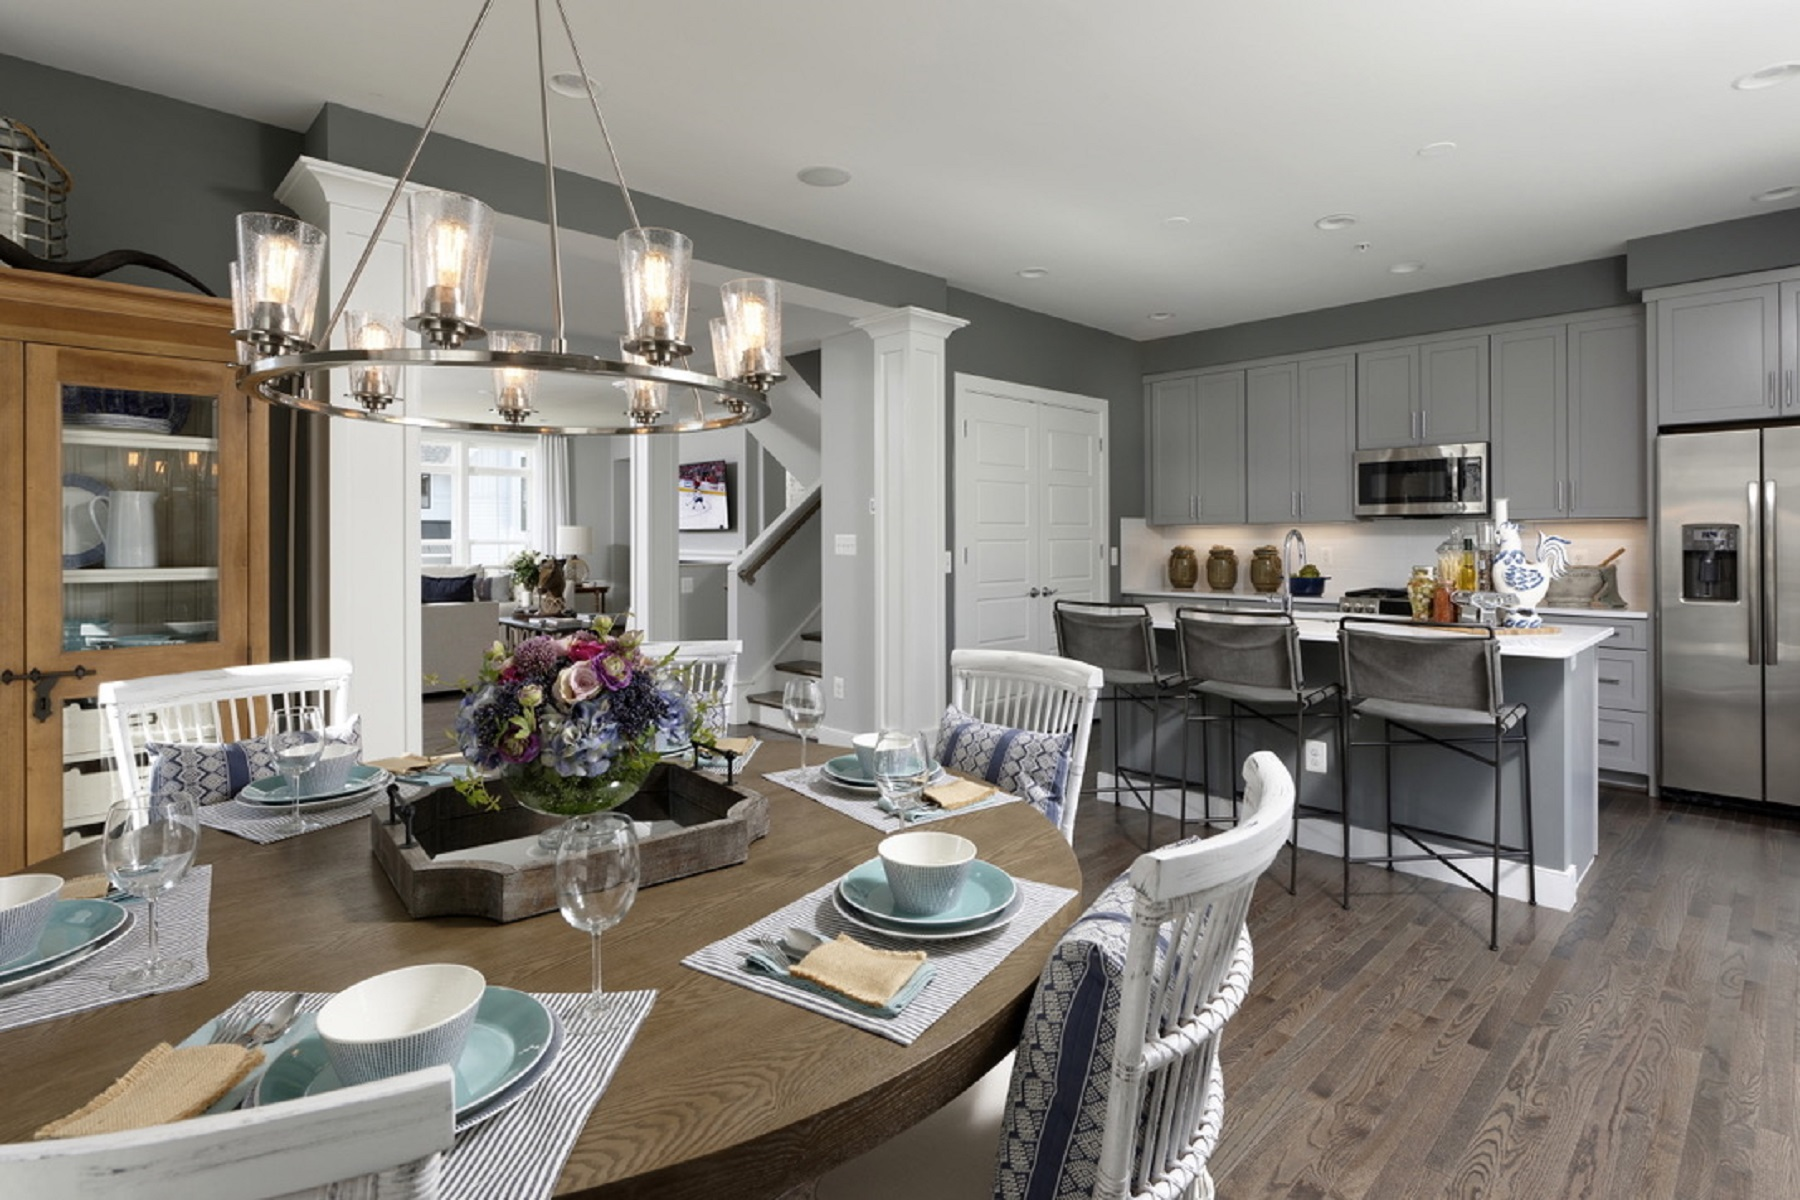 townhouses for Active at The Manors of Kensington Heights 2651 McComas Avenue Kensington, Maryland 20895 United States